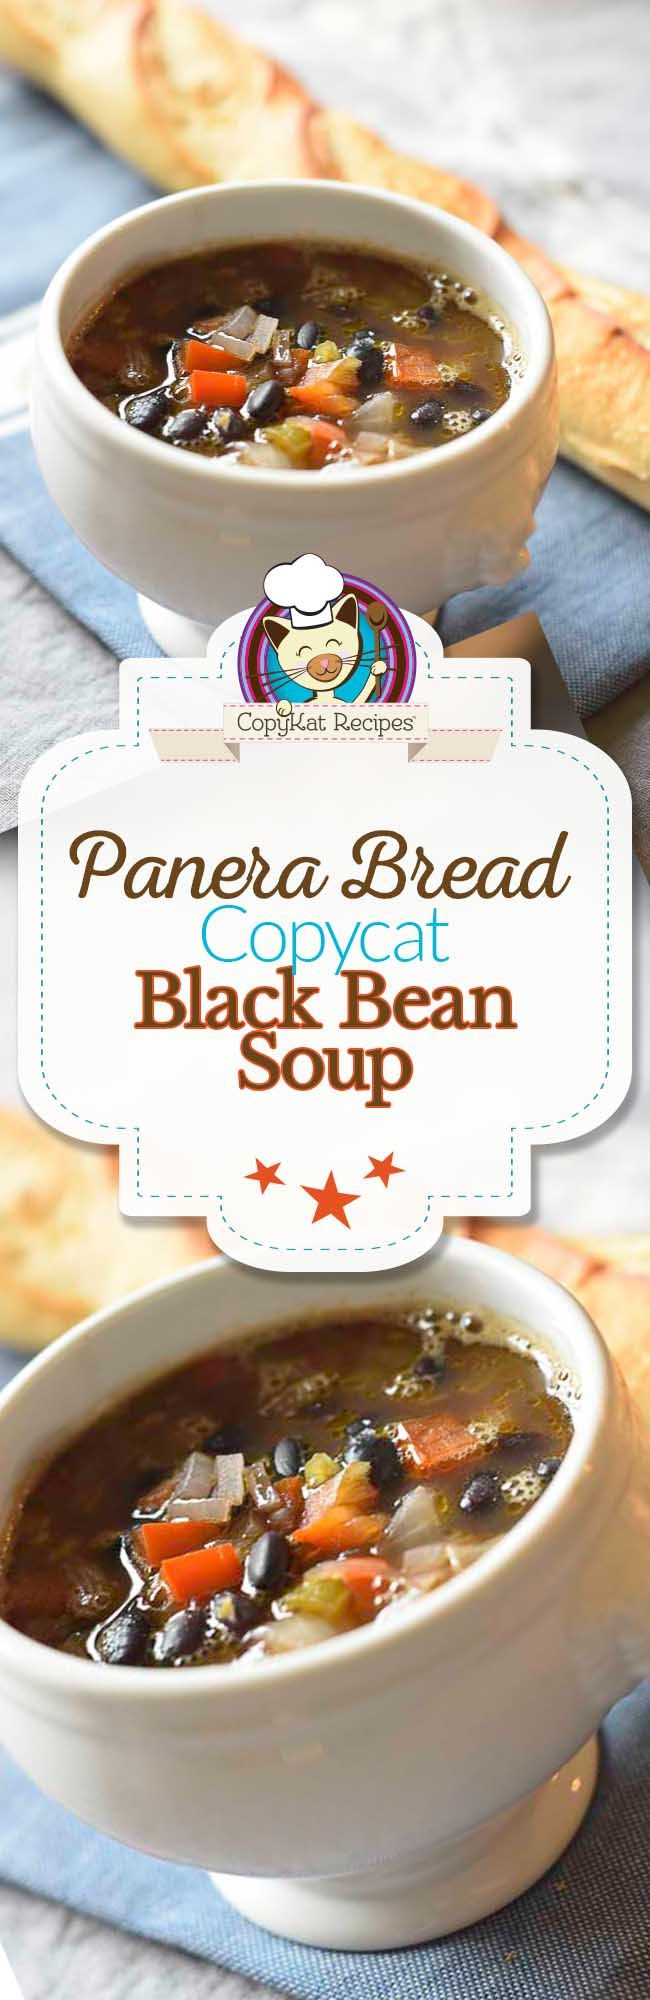 You can recreate your favorite Panera Bread Black Bean soup with this copycat recipe.  This vegetarian soup recipe is perfect for a filling meal.